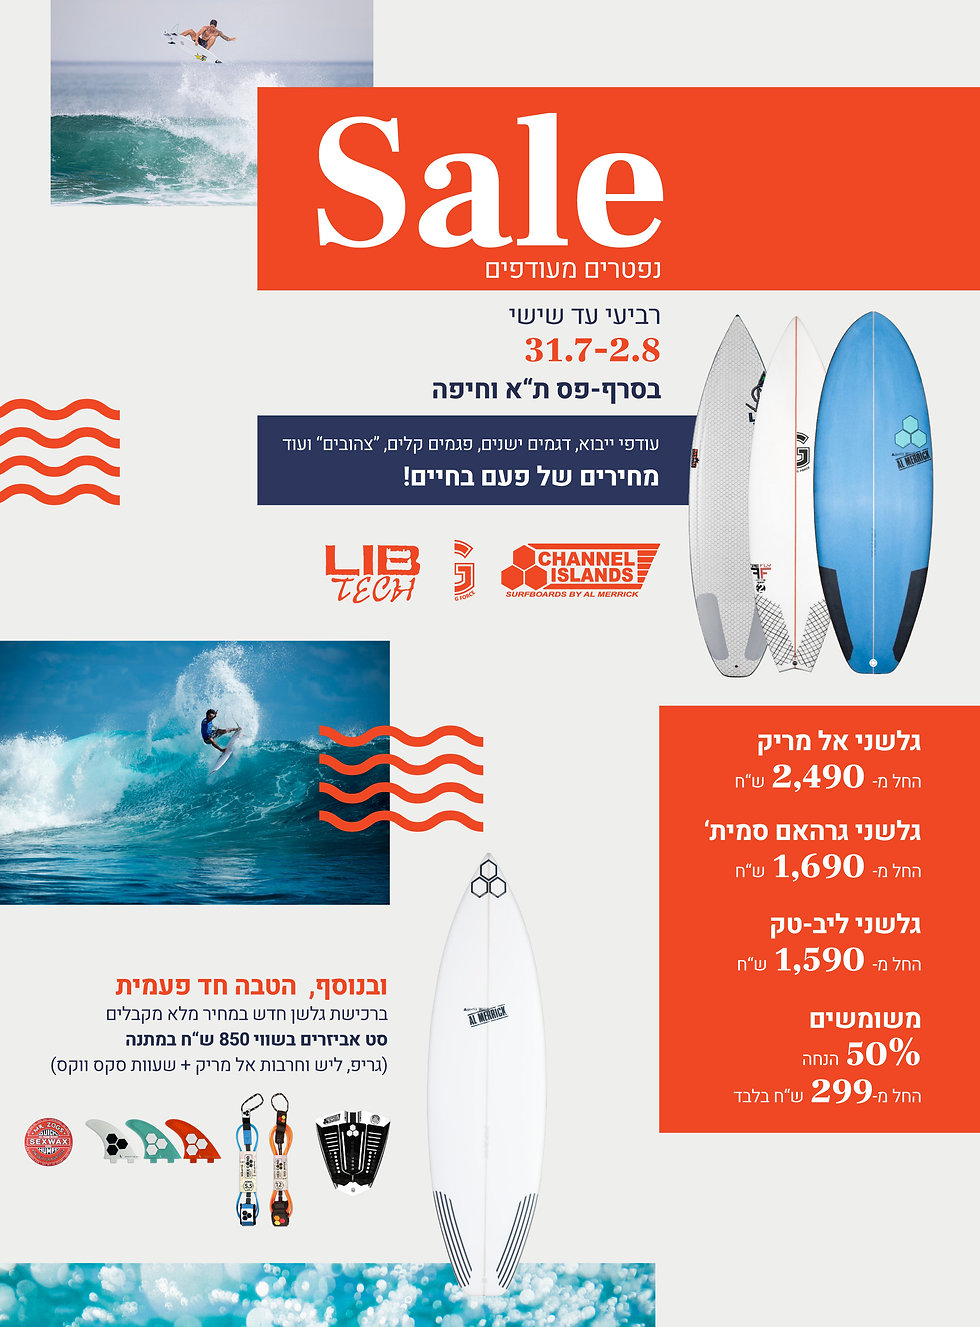 surfpass_website_landingpage_saleodafim_